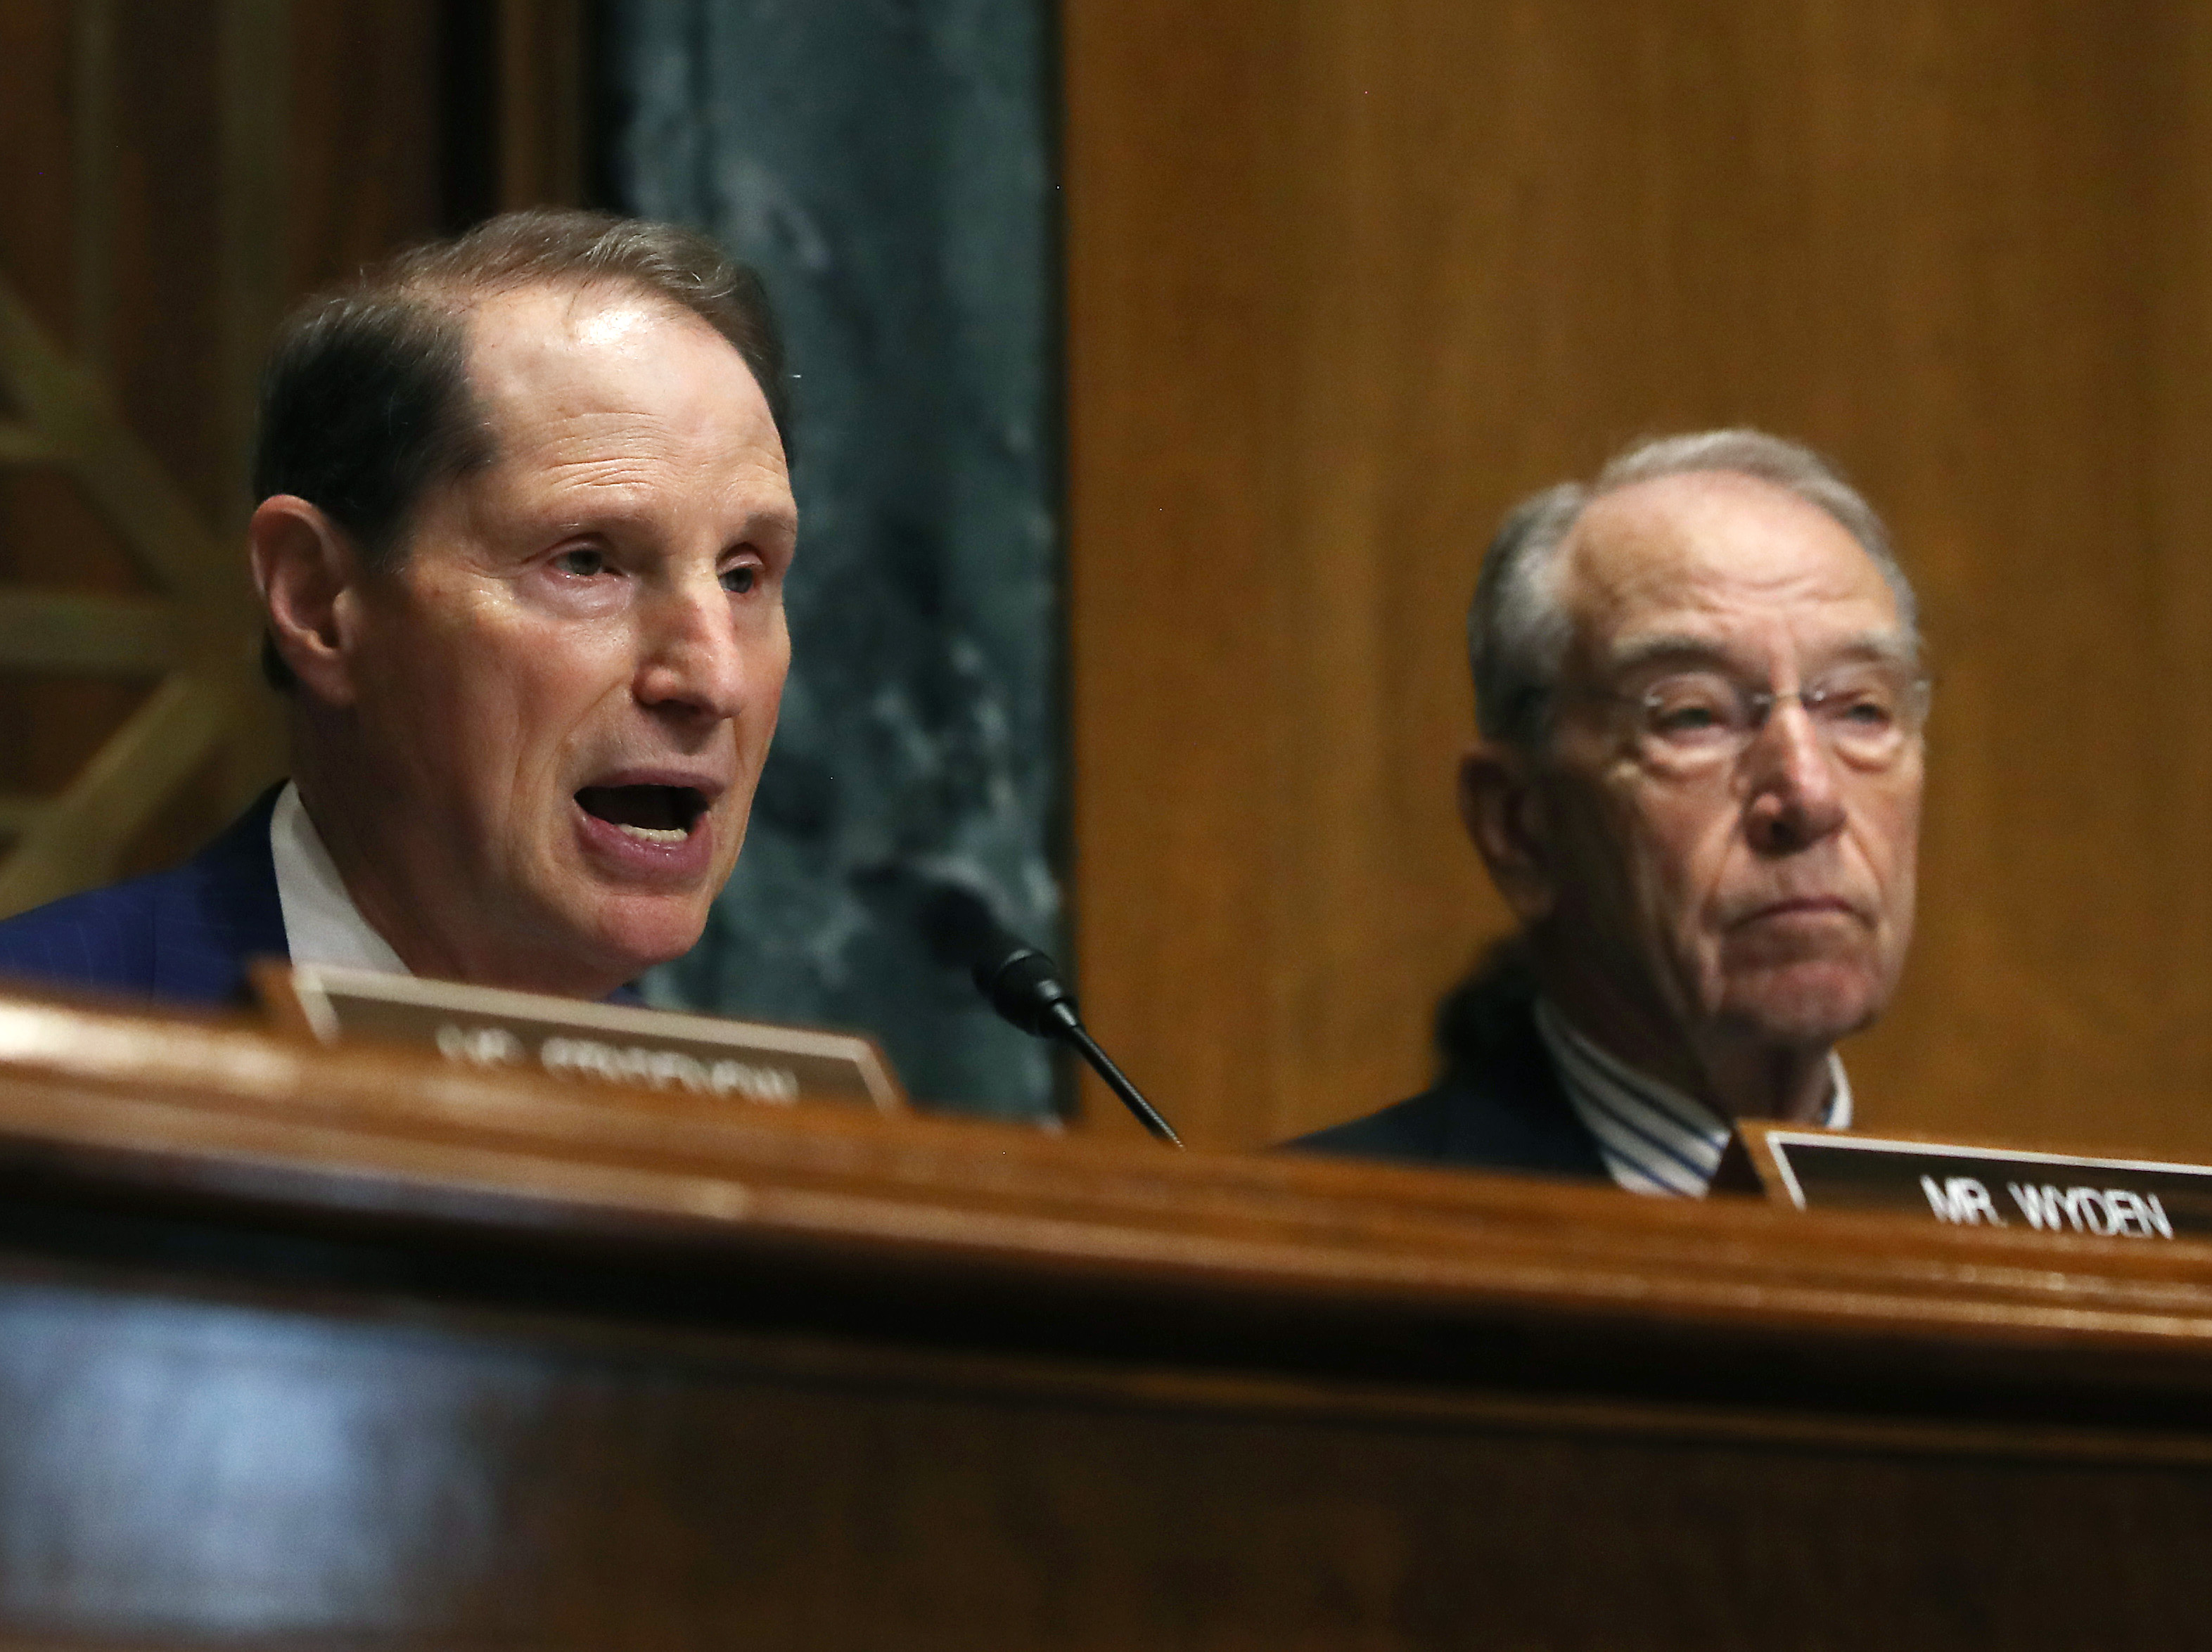 Sen. Ron Wyden (L) speaks while Chairman Chuck Grassley listens, during a Senate Finance Committee hearing on June 18, 2019 in Washington, DC. (Photo by Mark Wilson/Getty Images)